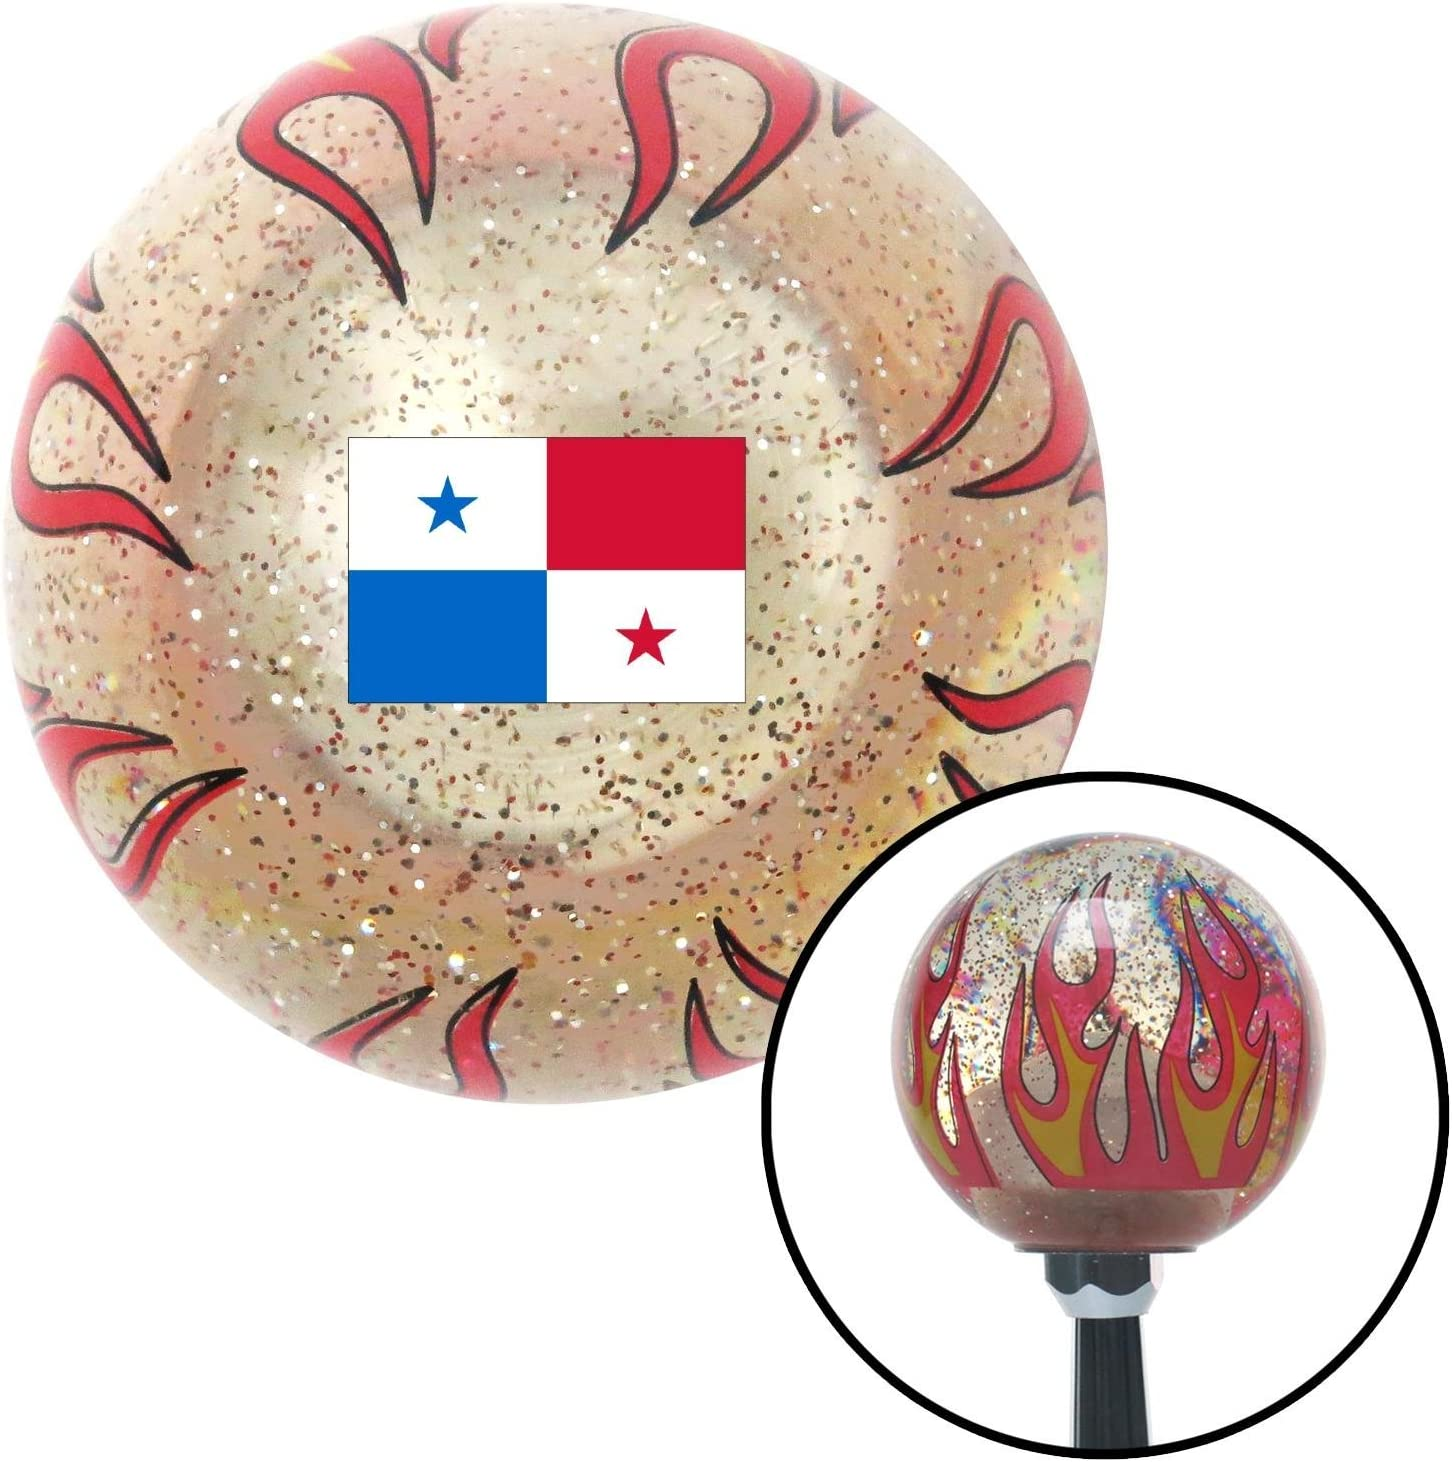 American Shifter 309851 Shift Knob Fla 67% OFF of fixed price Panama Flame Clear Metal Large-scale sale